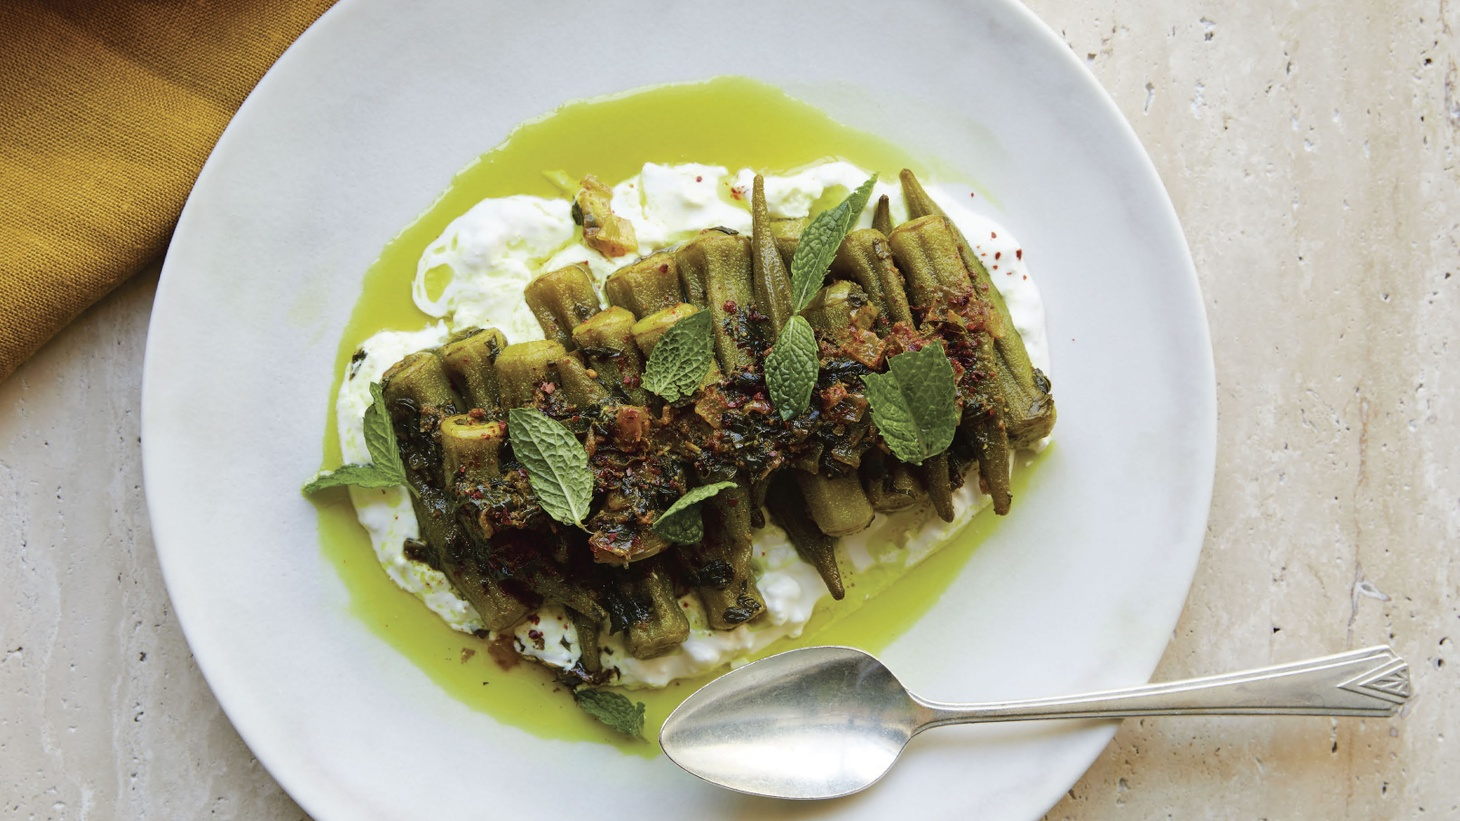 Ori Menashe's confited okra dish was inspired by his experience of peeling 240 artichokes a day when he worked at Angelini Osteria.